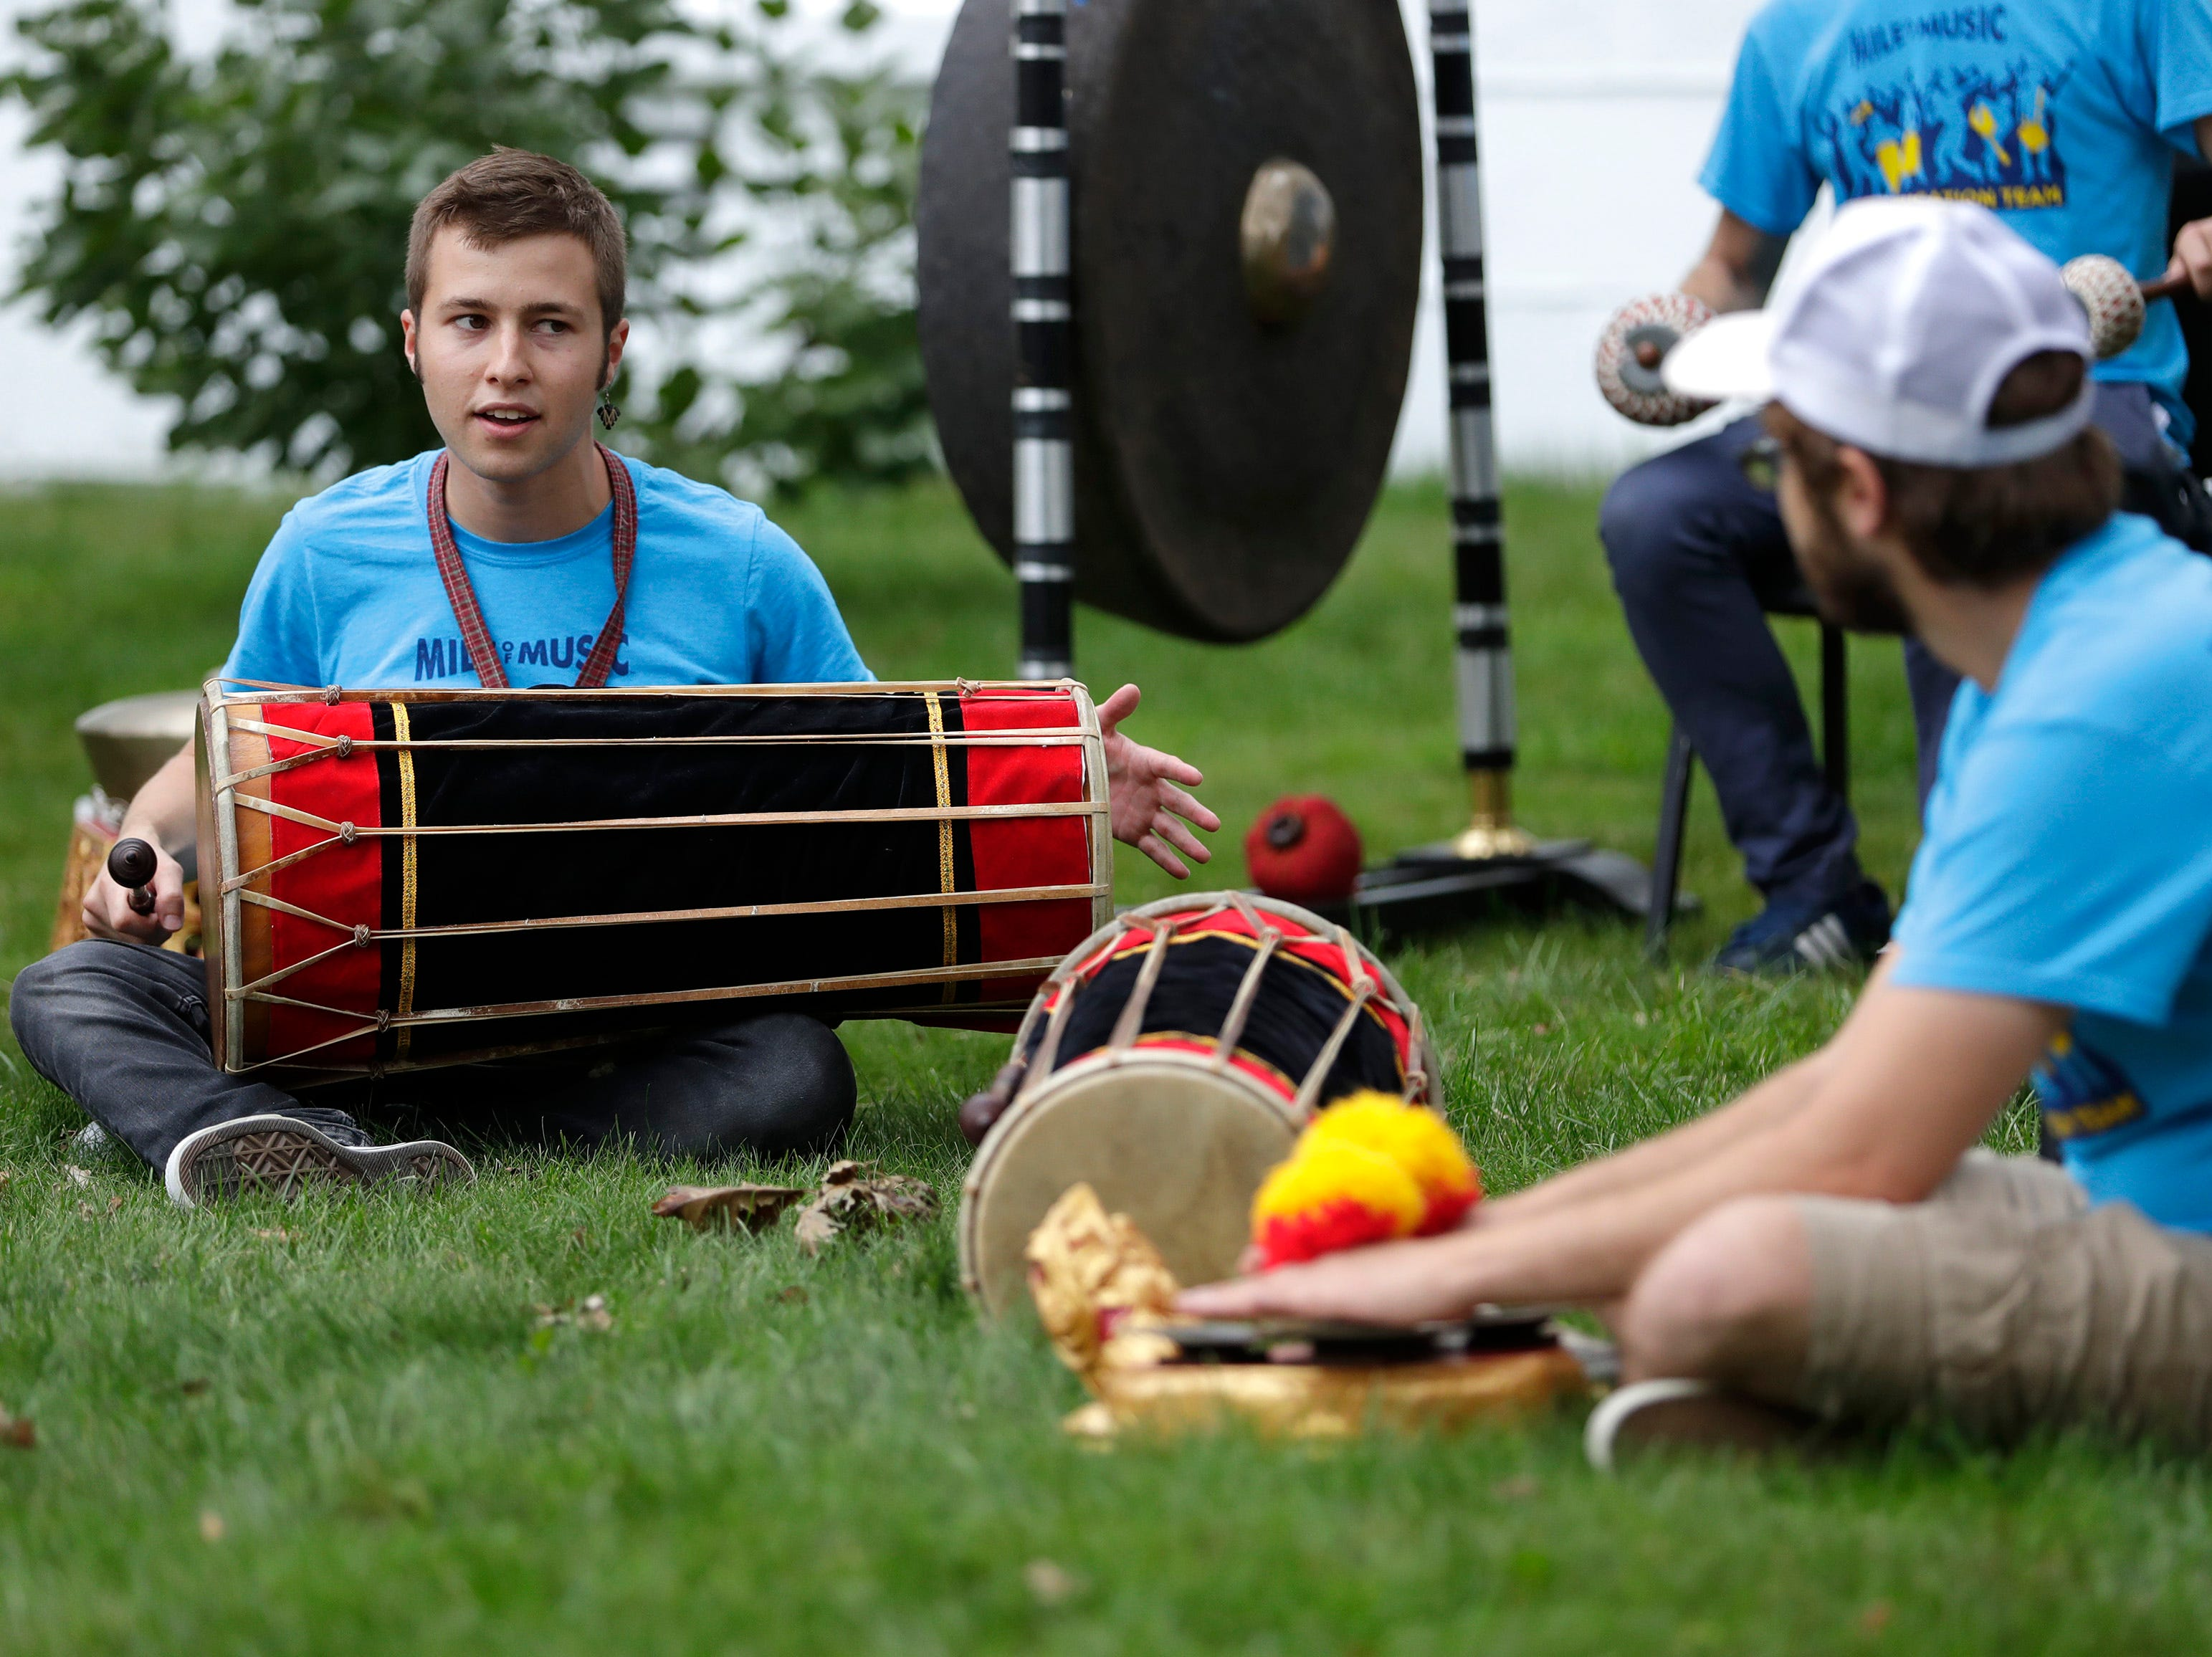 The Balinese Gamelan music education workshop during the first day of Mile of Music Thursday, Aug. 2, 2018, in Appleton, Wis.Danny Damiani/USA TODAY NETWORK-Wisconsin